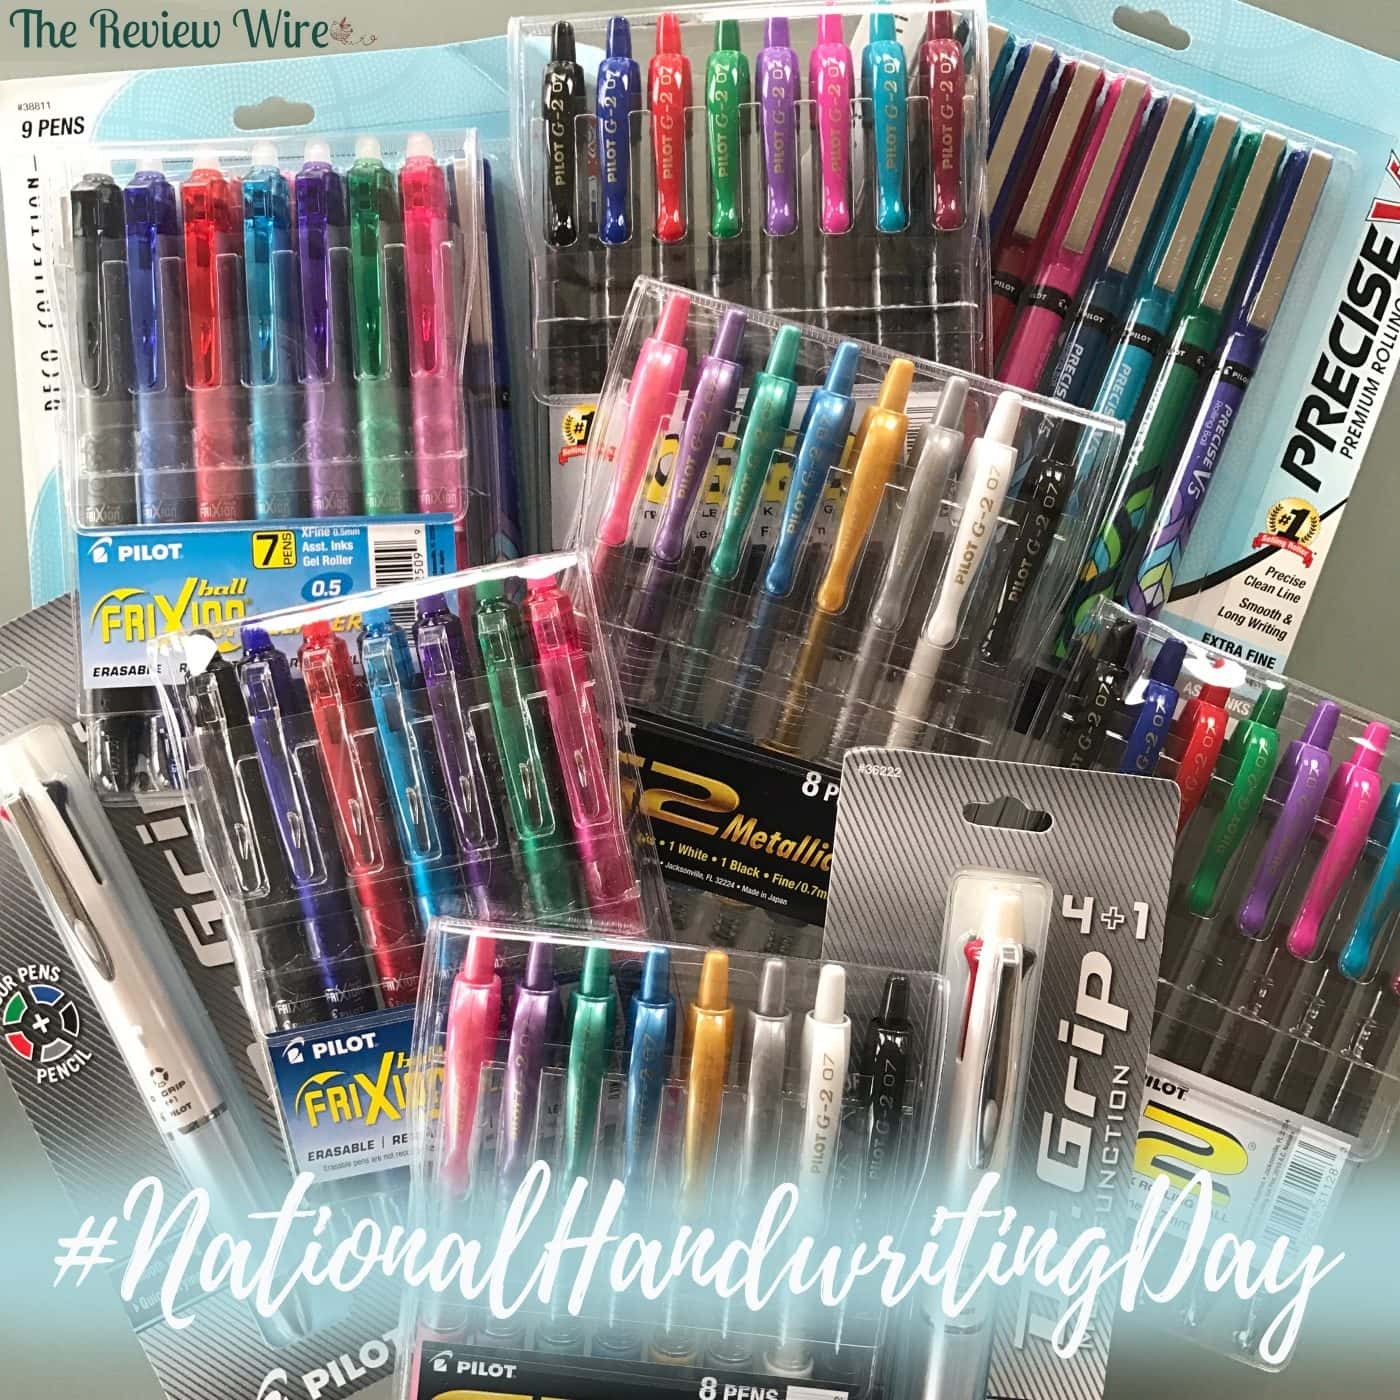 Pilot Pen_National Handwriting Day